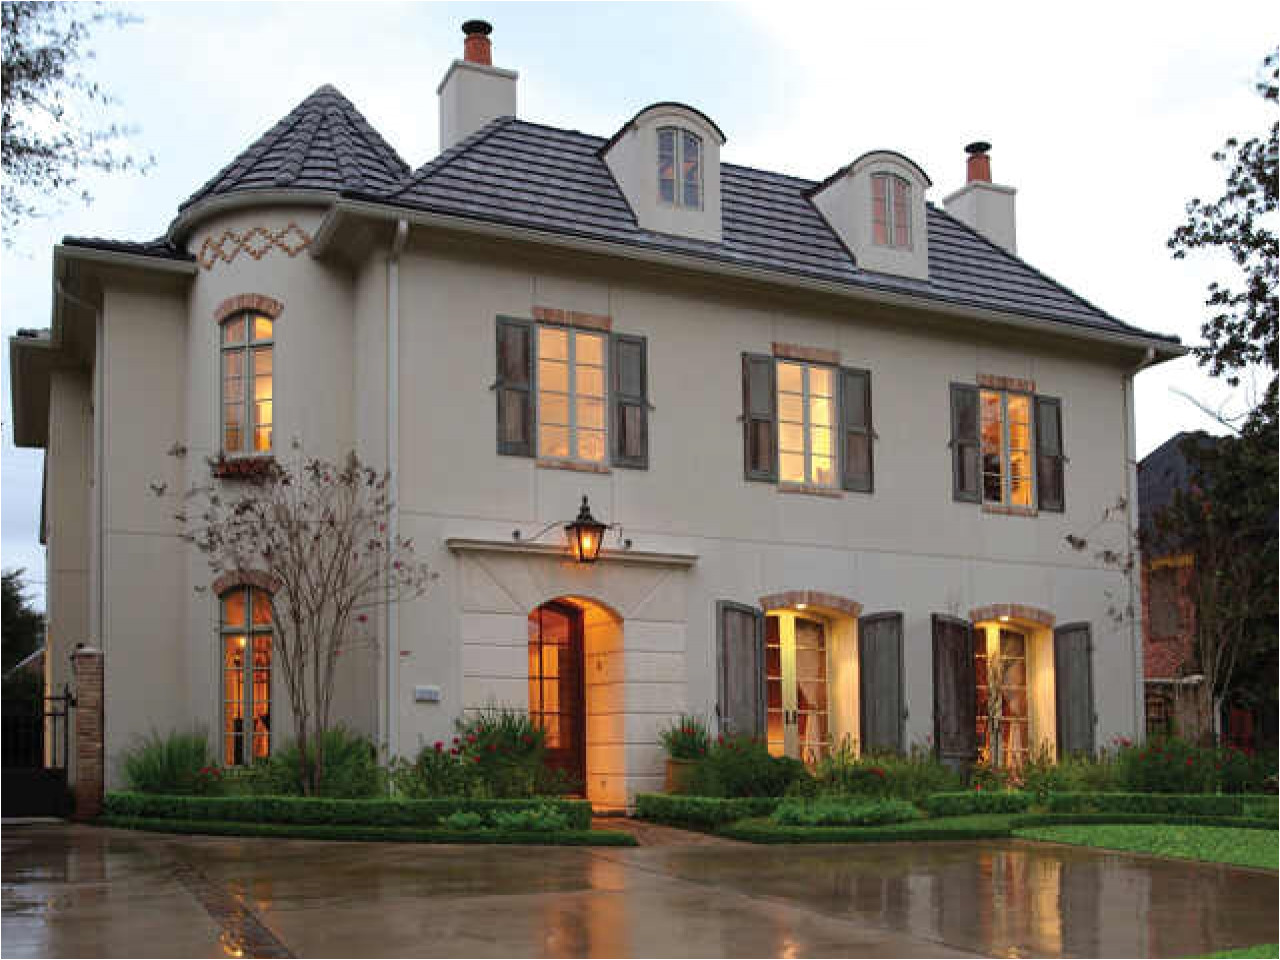 881d089647190e96 french style house exterior french chateau architecture